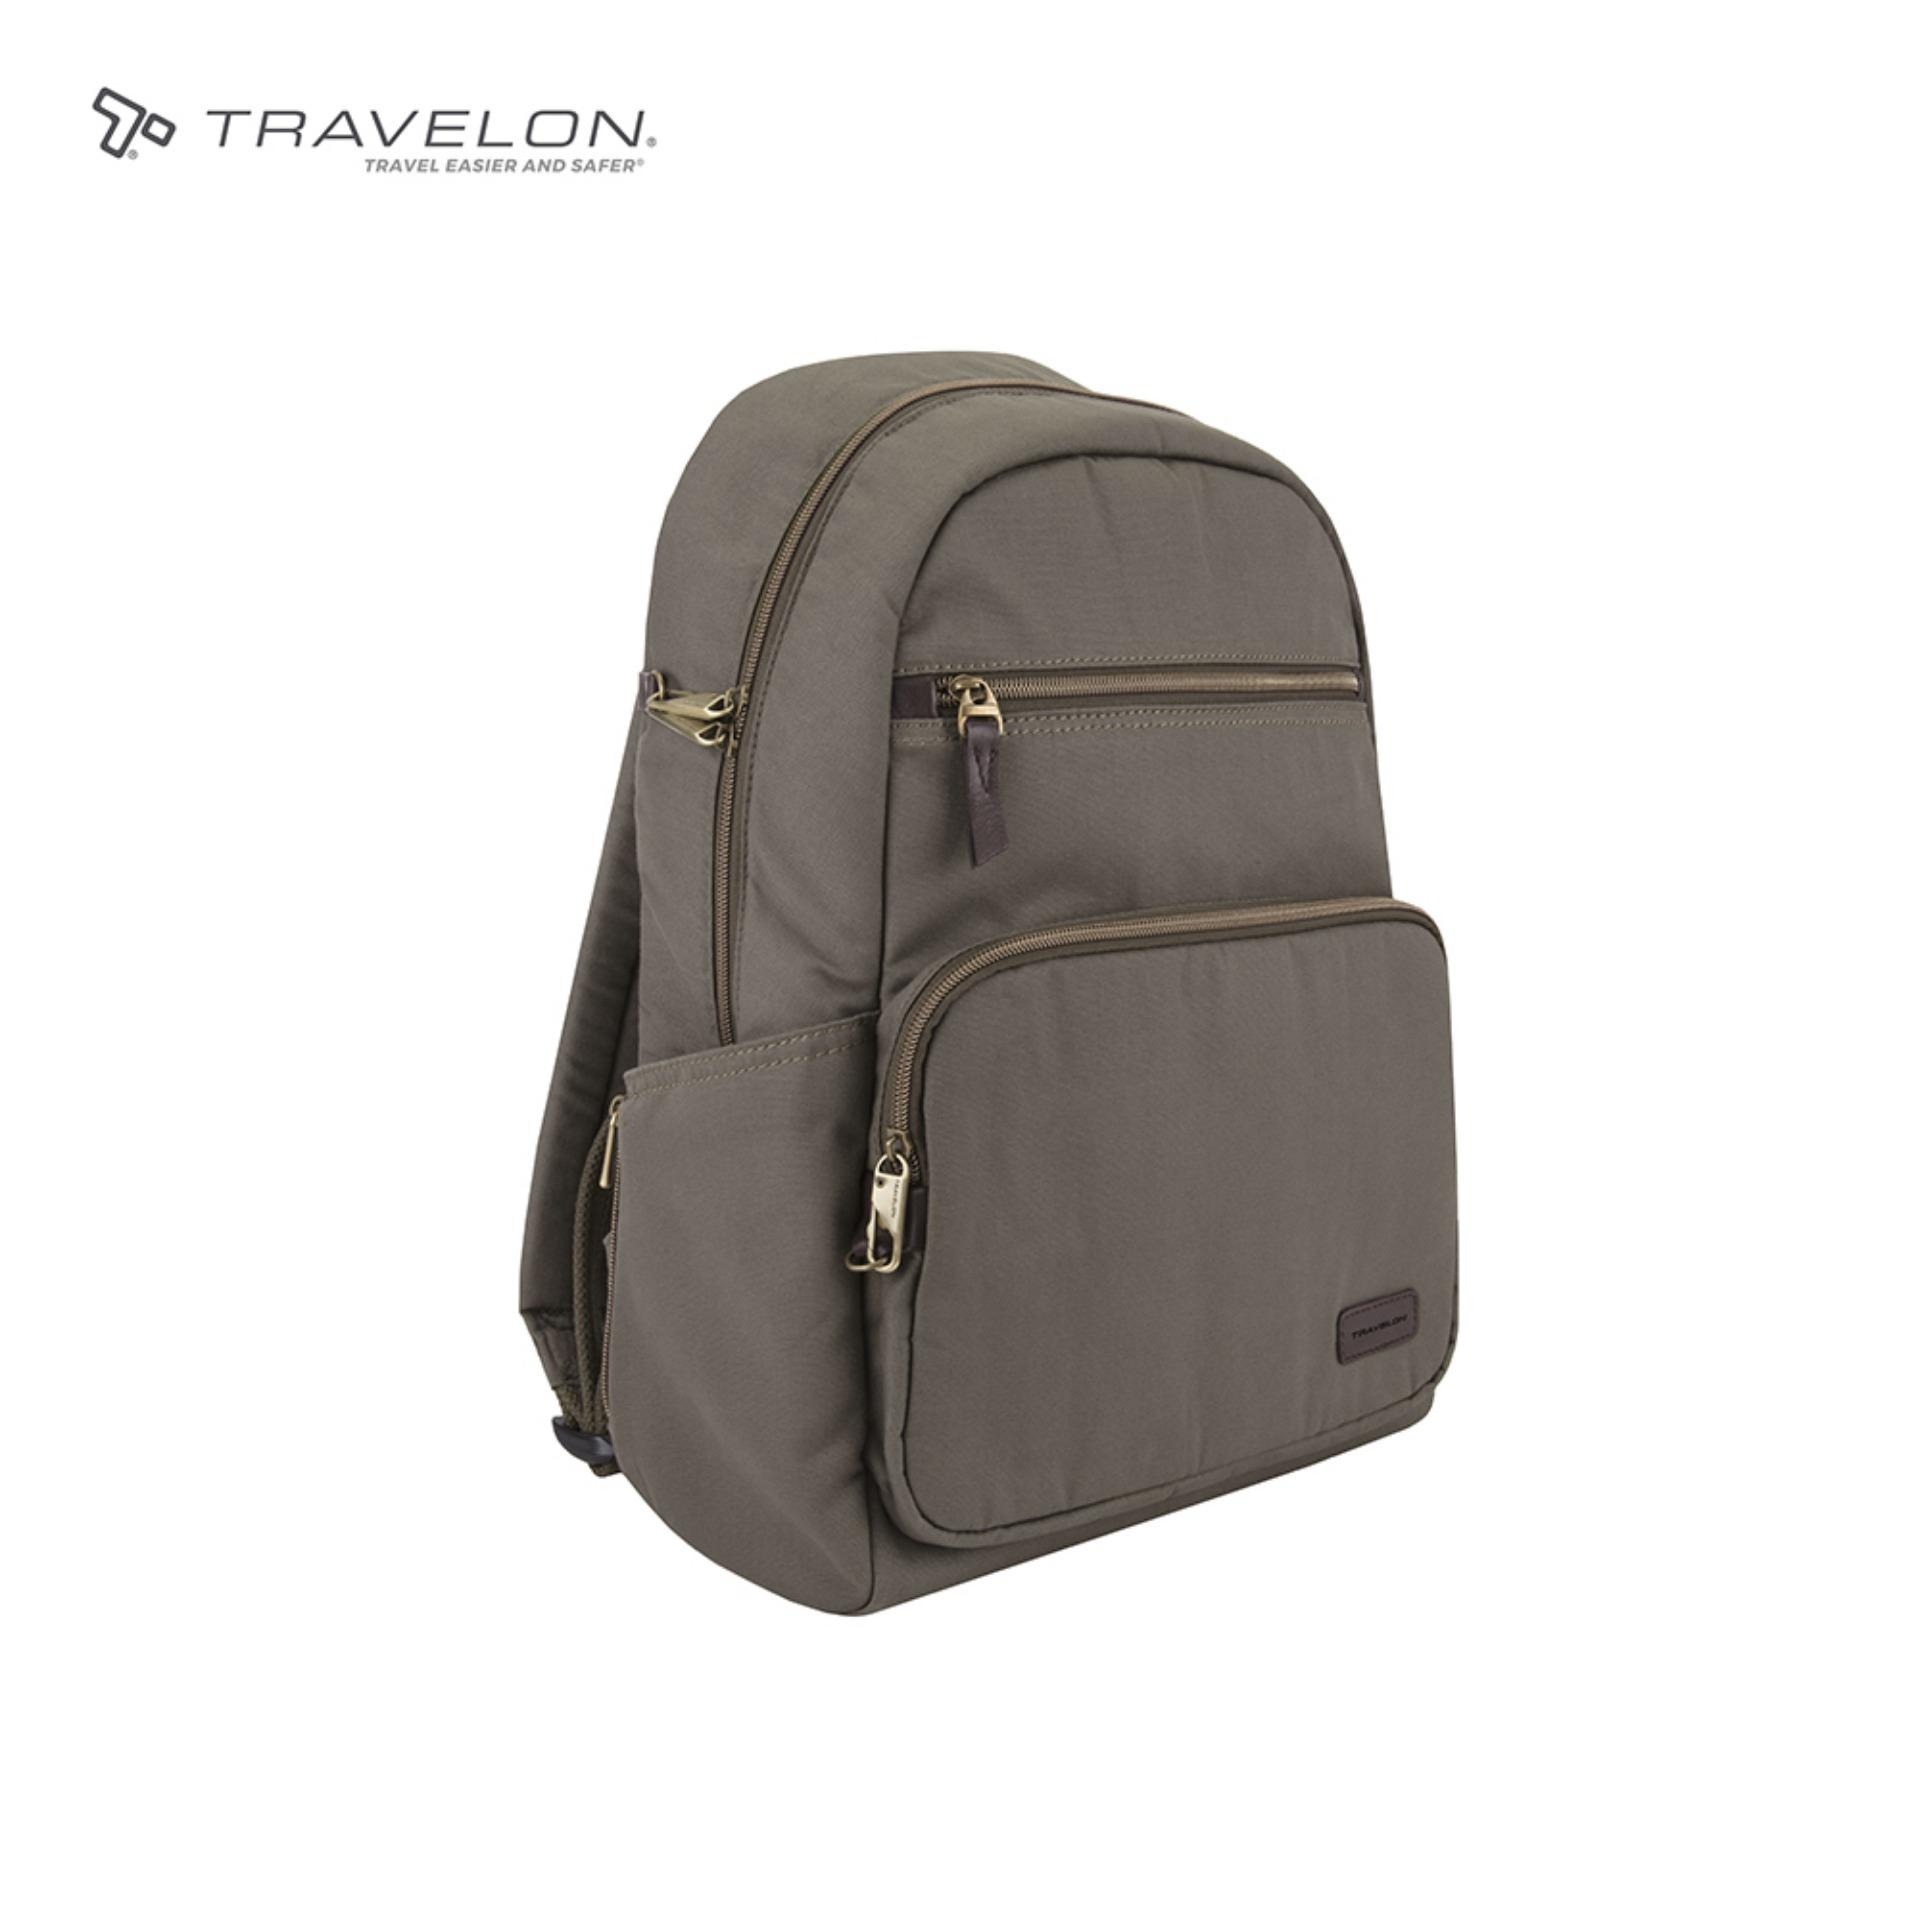 6234526ade40 Messenger Bags for Men for sale - Shoulder Bags for Men online brands